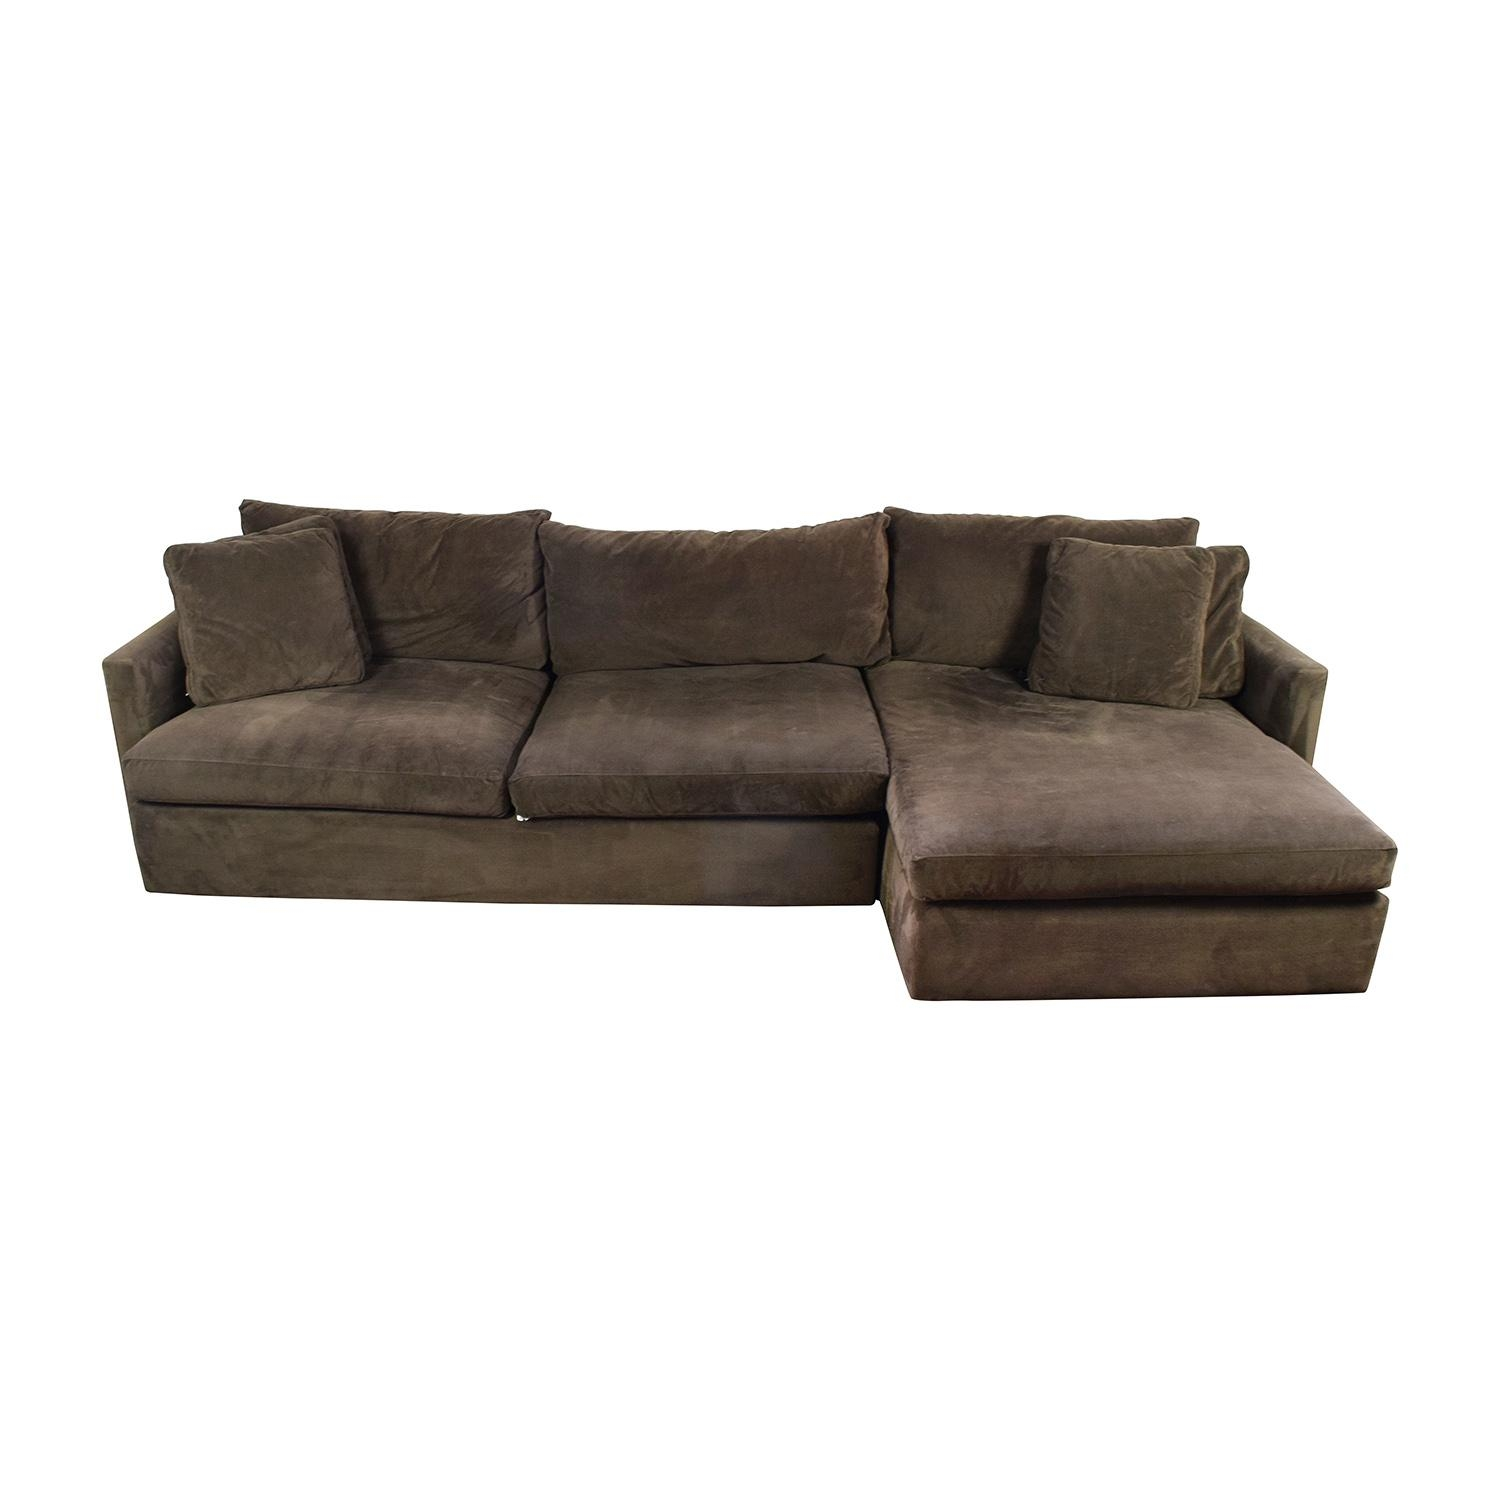 89% Off – Crate And Barrel Crate & Barrel Brown Left Arm Sectional With Regard To Crate And Barrel Sectional (Photo 3 of 15)